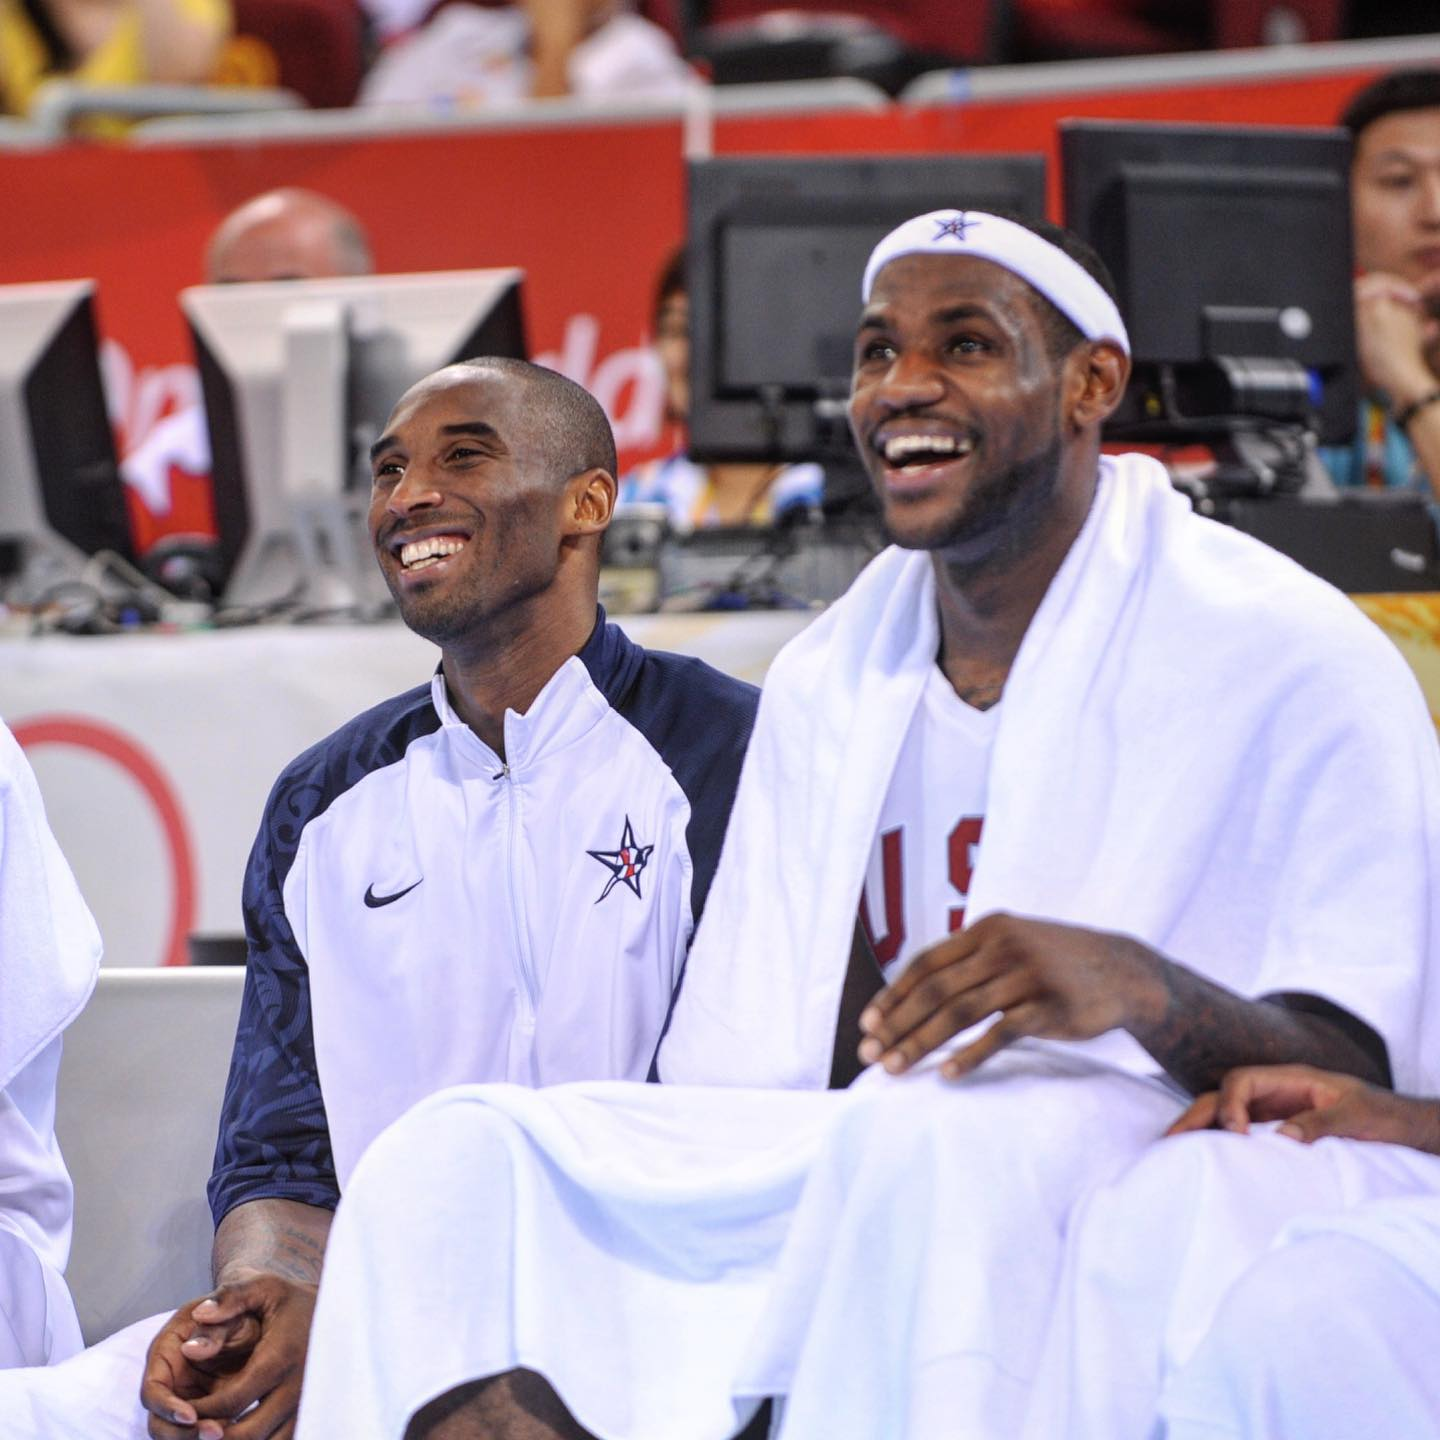 Kobe Bryant and LeBron James at Olympics